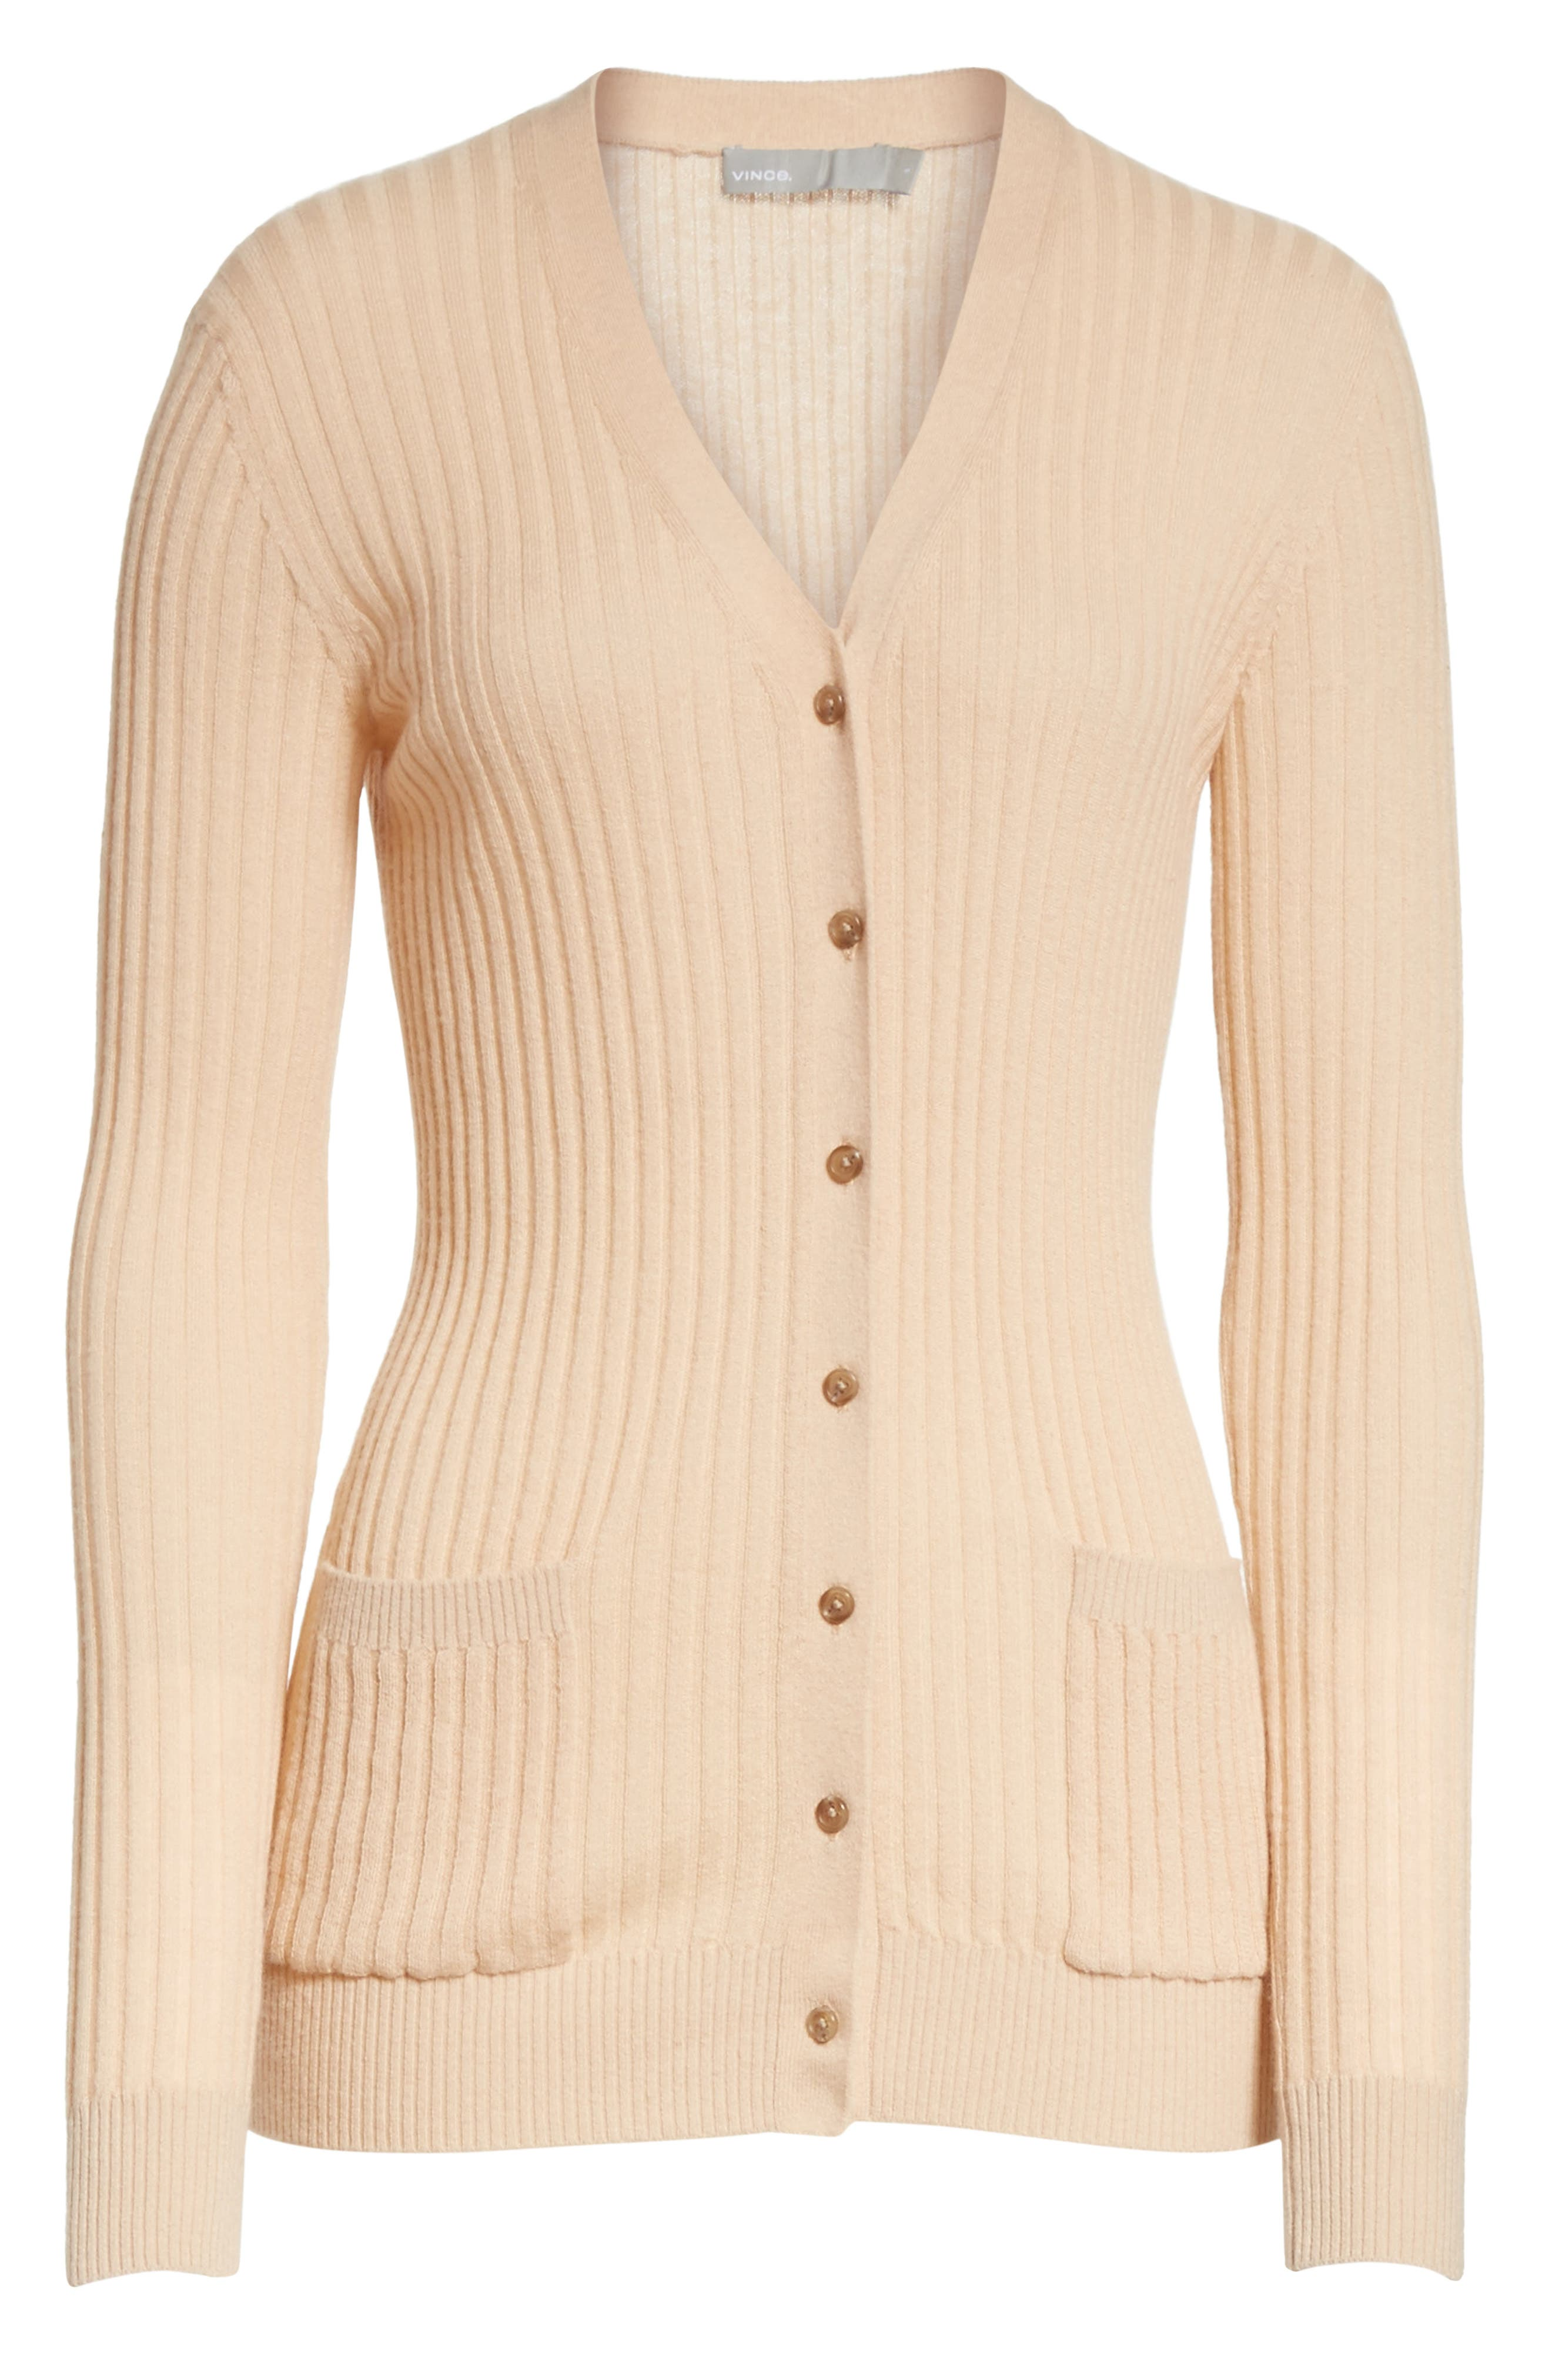 Skinny Ribbed Cashmere Cardigan,                             Alternate thumbnail 6, color,                             298